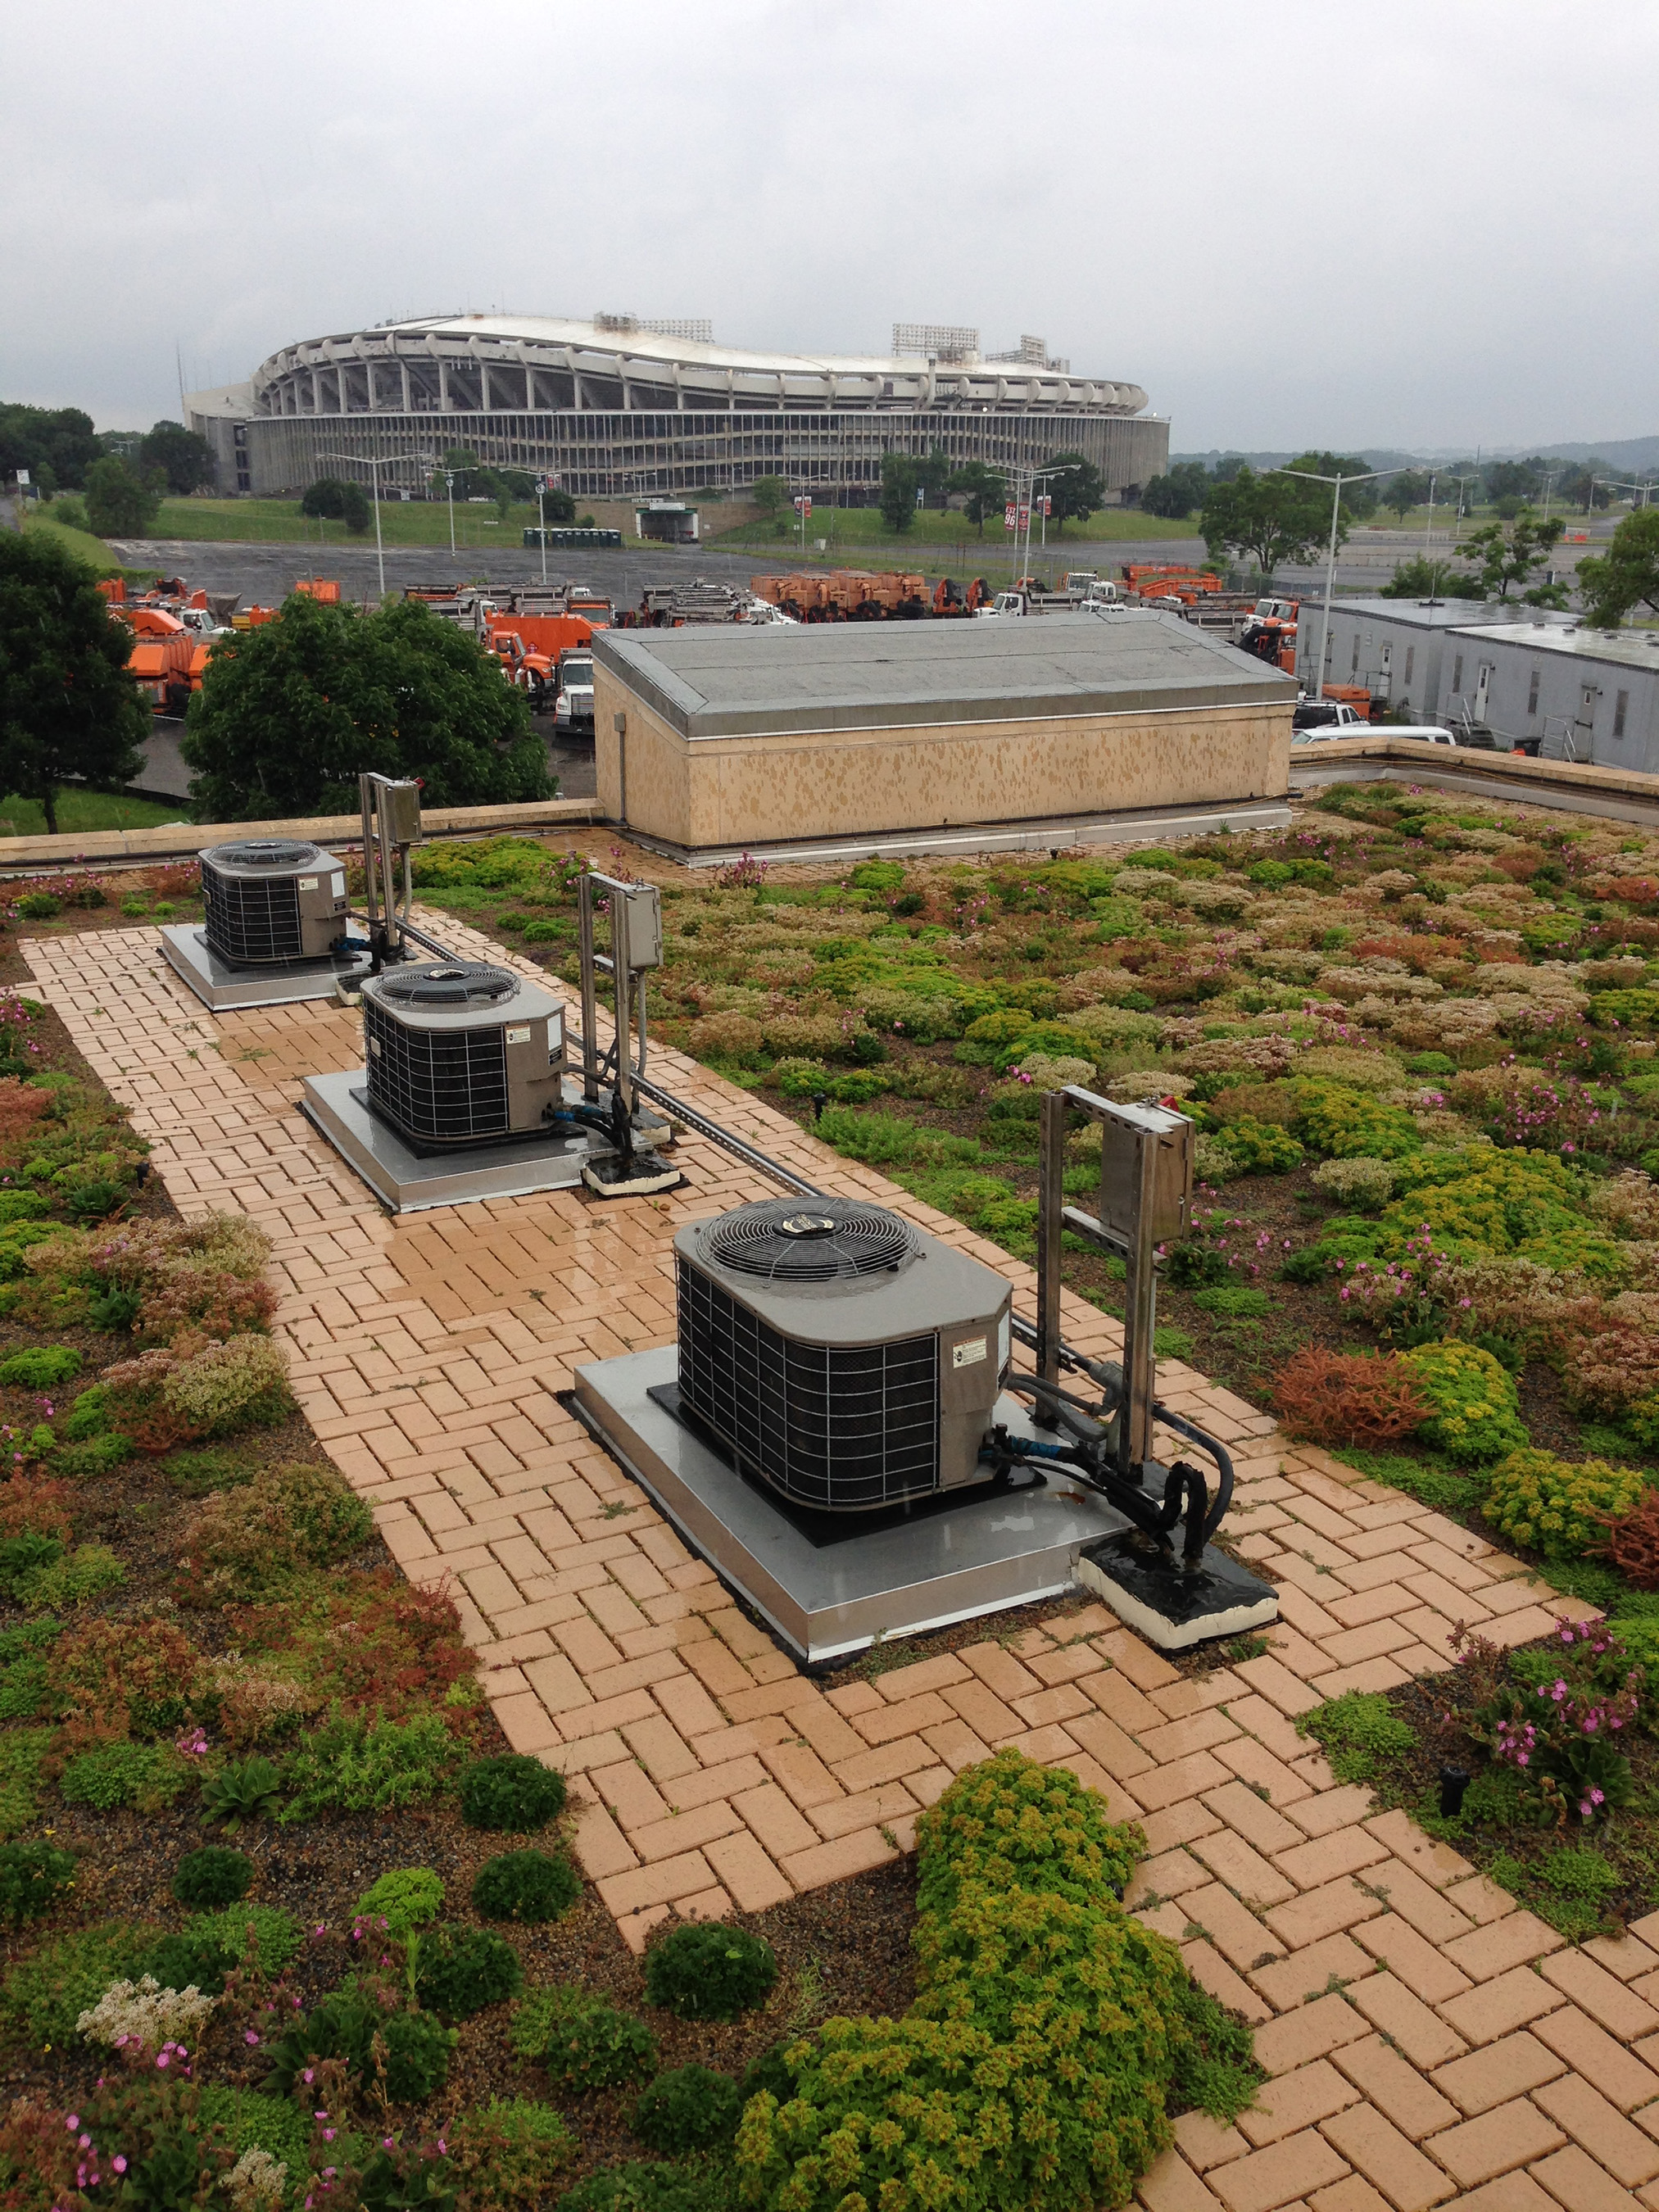 This green roof absorbs rain water before it can enter the sewer system, near RFK Stadium in Washington, DC.